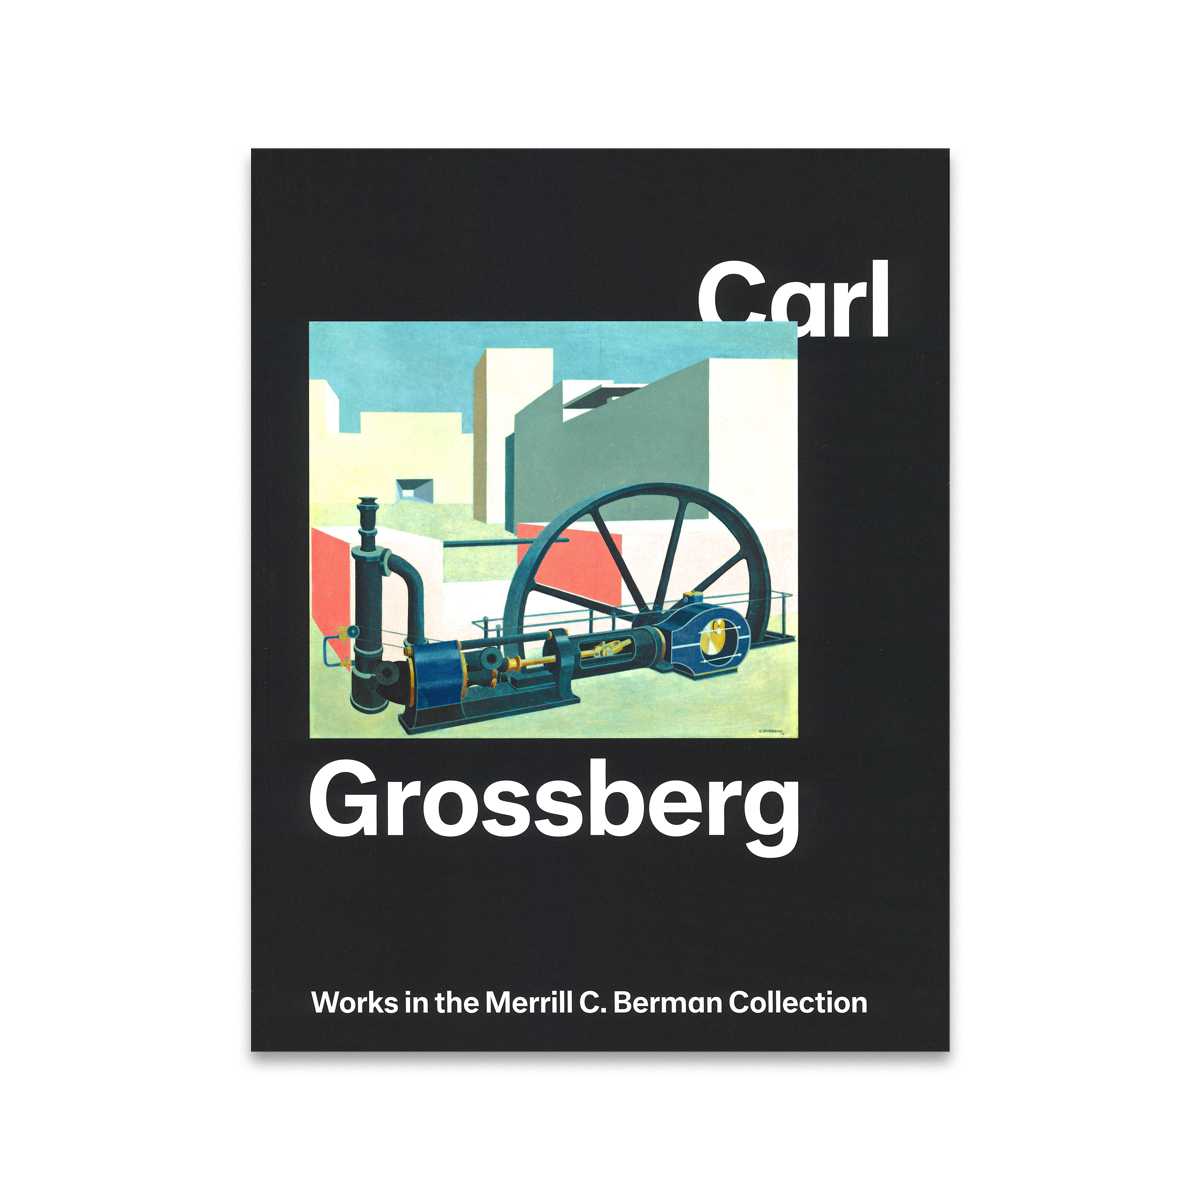 Carl Grossberg: Works in the Merrill C. Berman Collection, by Melissa Venator, provides an overview of the German artist's career.